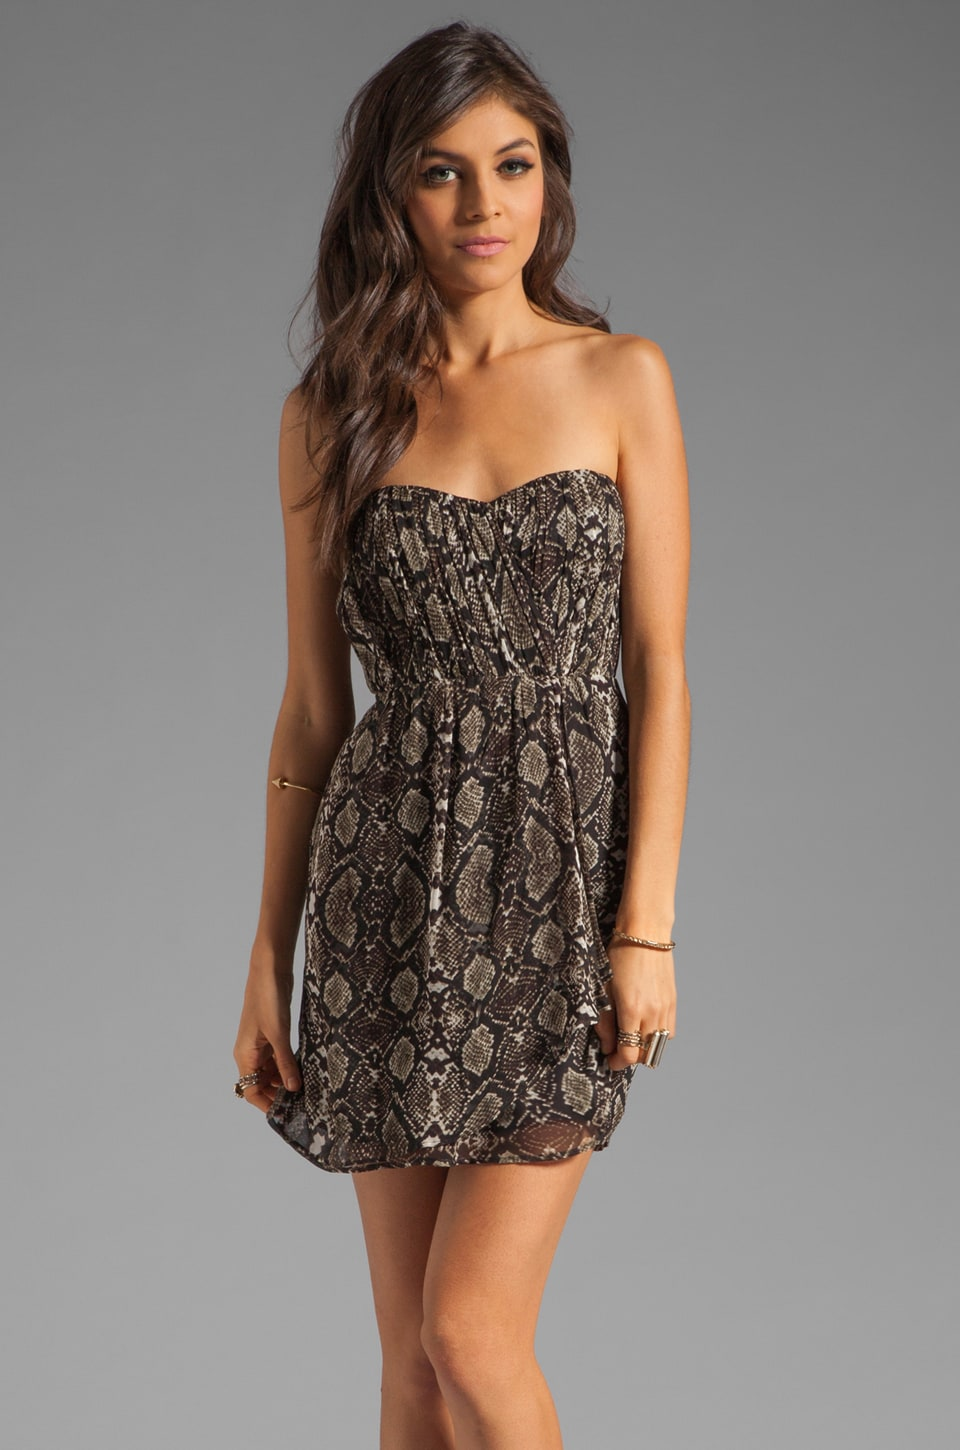 Twelfth Street By Cynthia Vincent Verona Strapless Party Dress in Vintage Snake Print